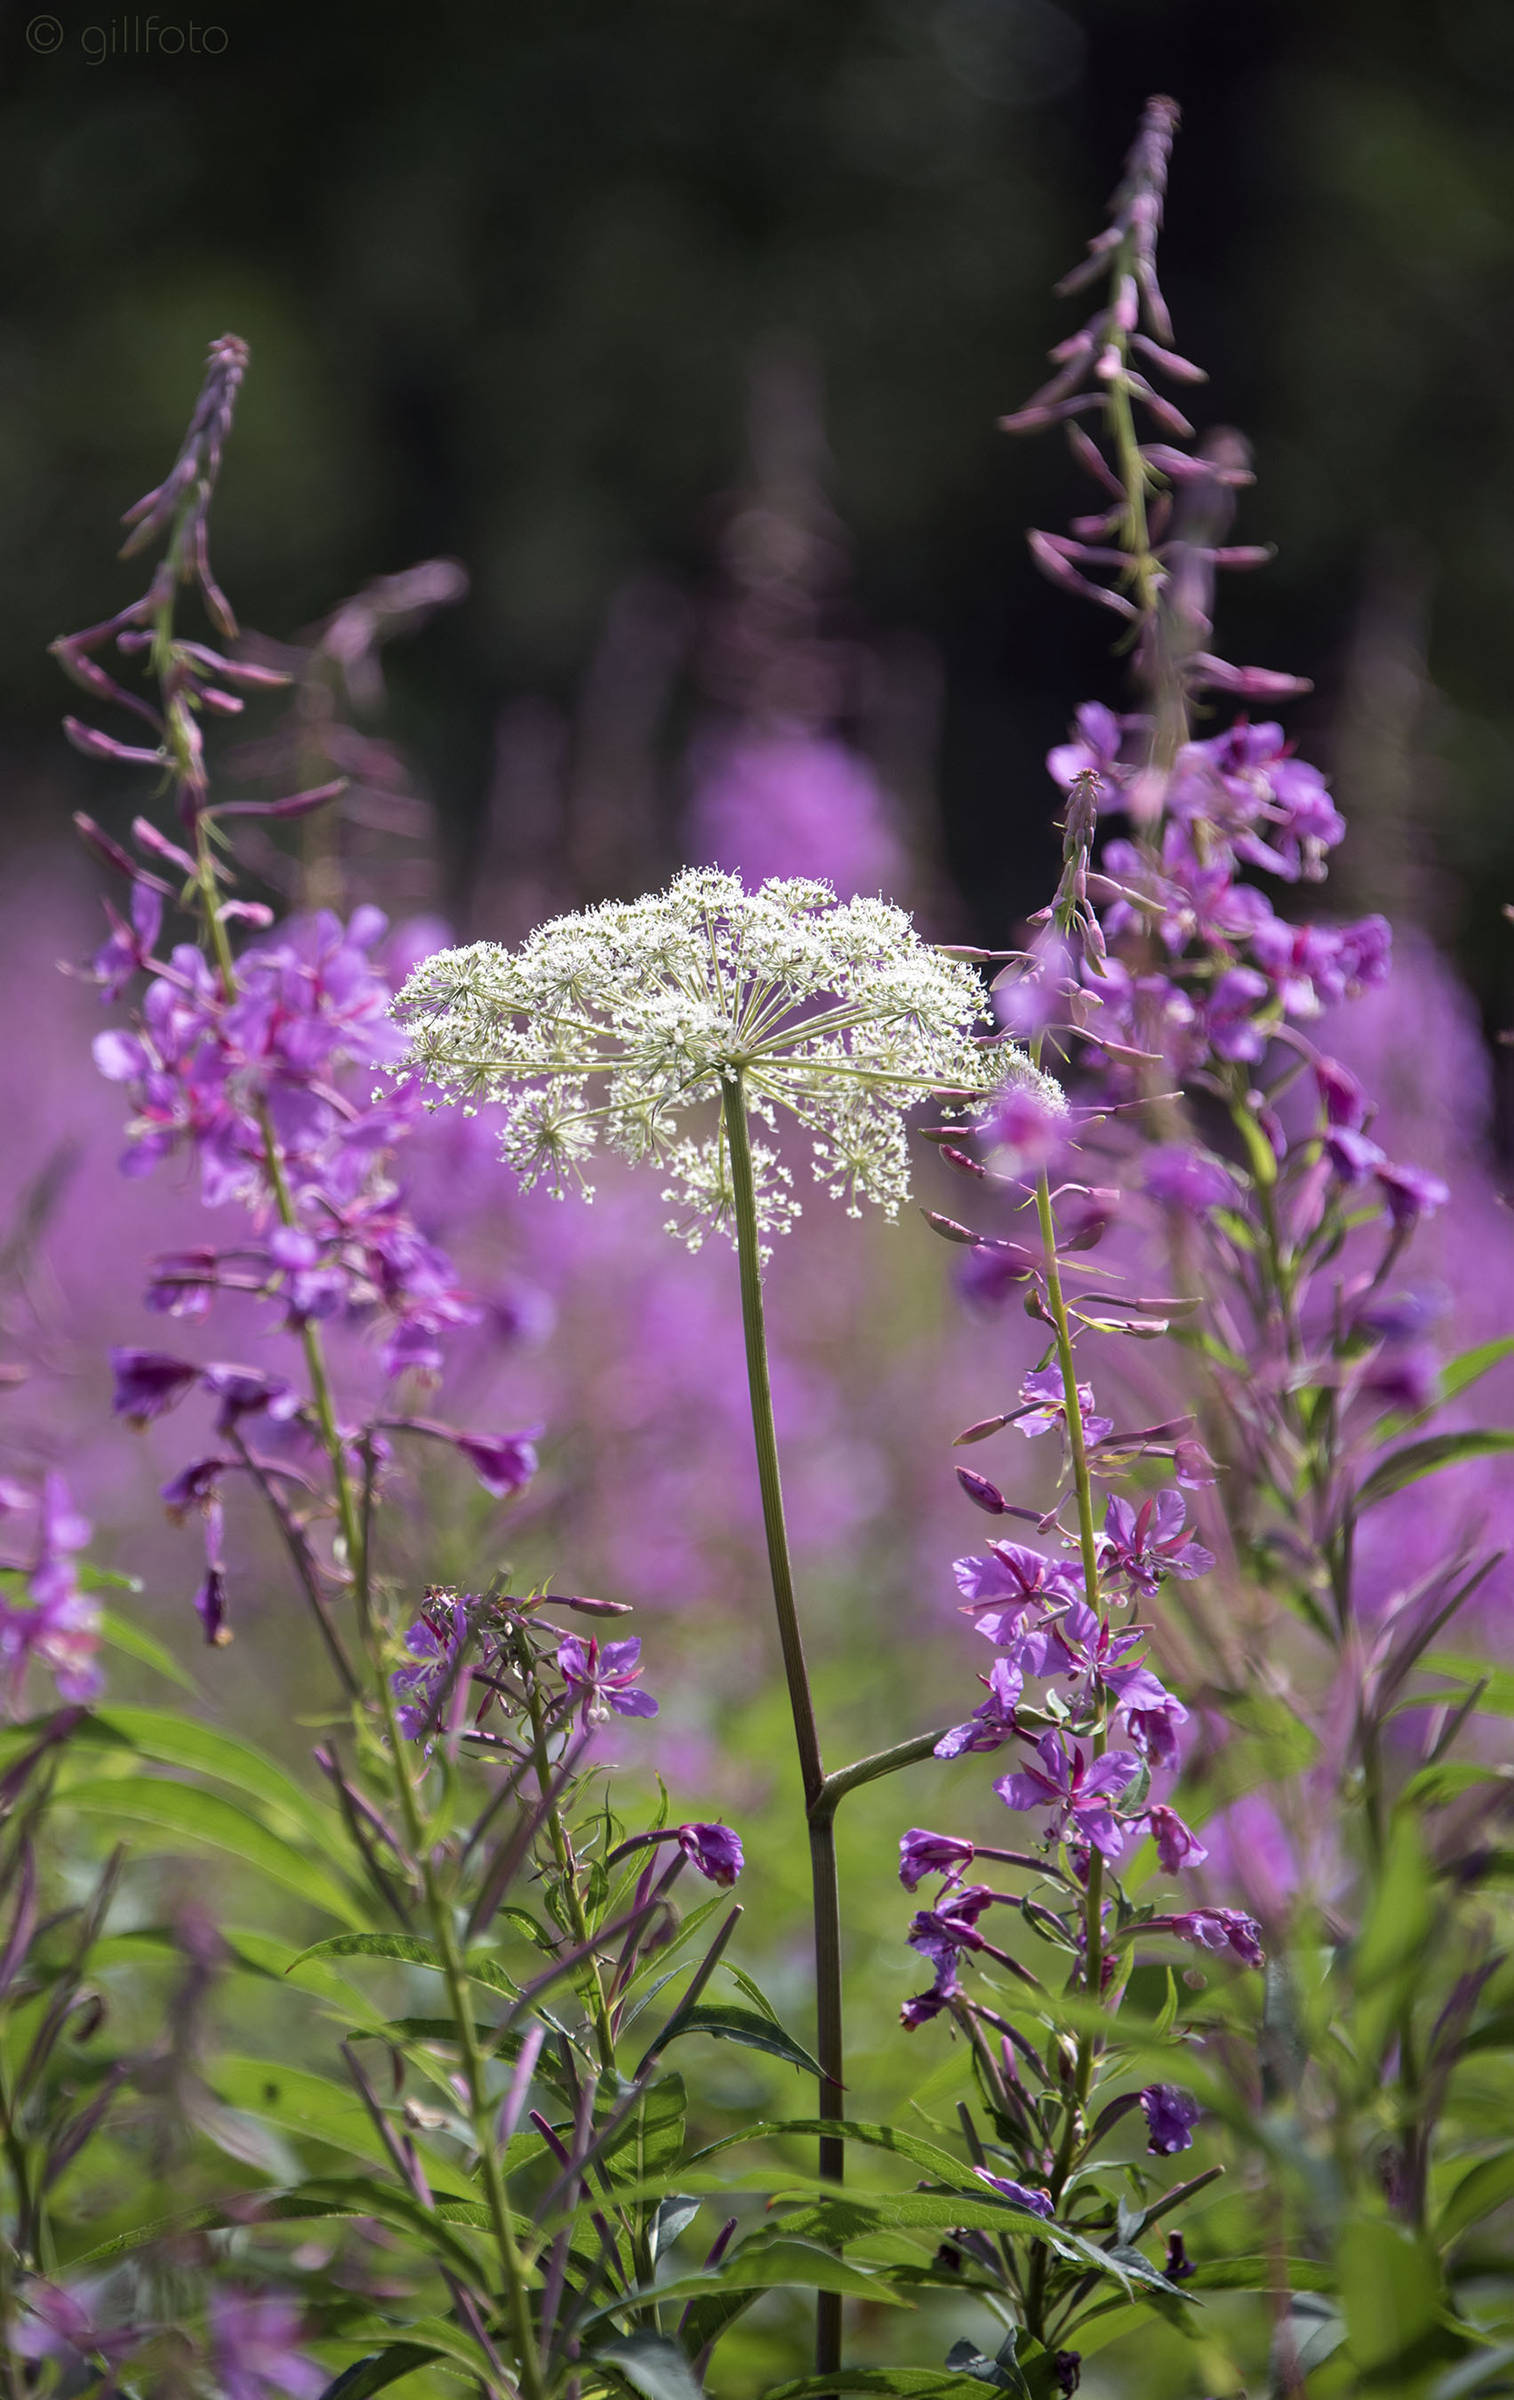 Fireweed surrounds a solo parsley plant in Cowee Meadow in Point Bridget State Park on Sunday, July 21, 2019. (Courtesy Photo | Kenneth Gill)